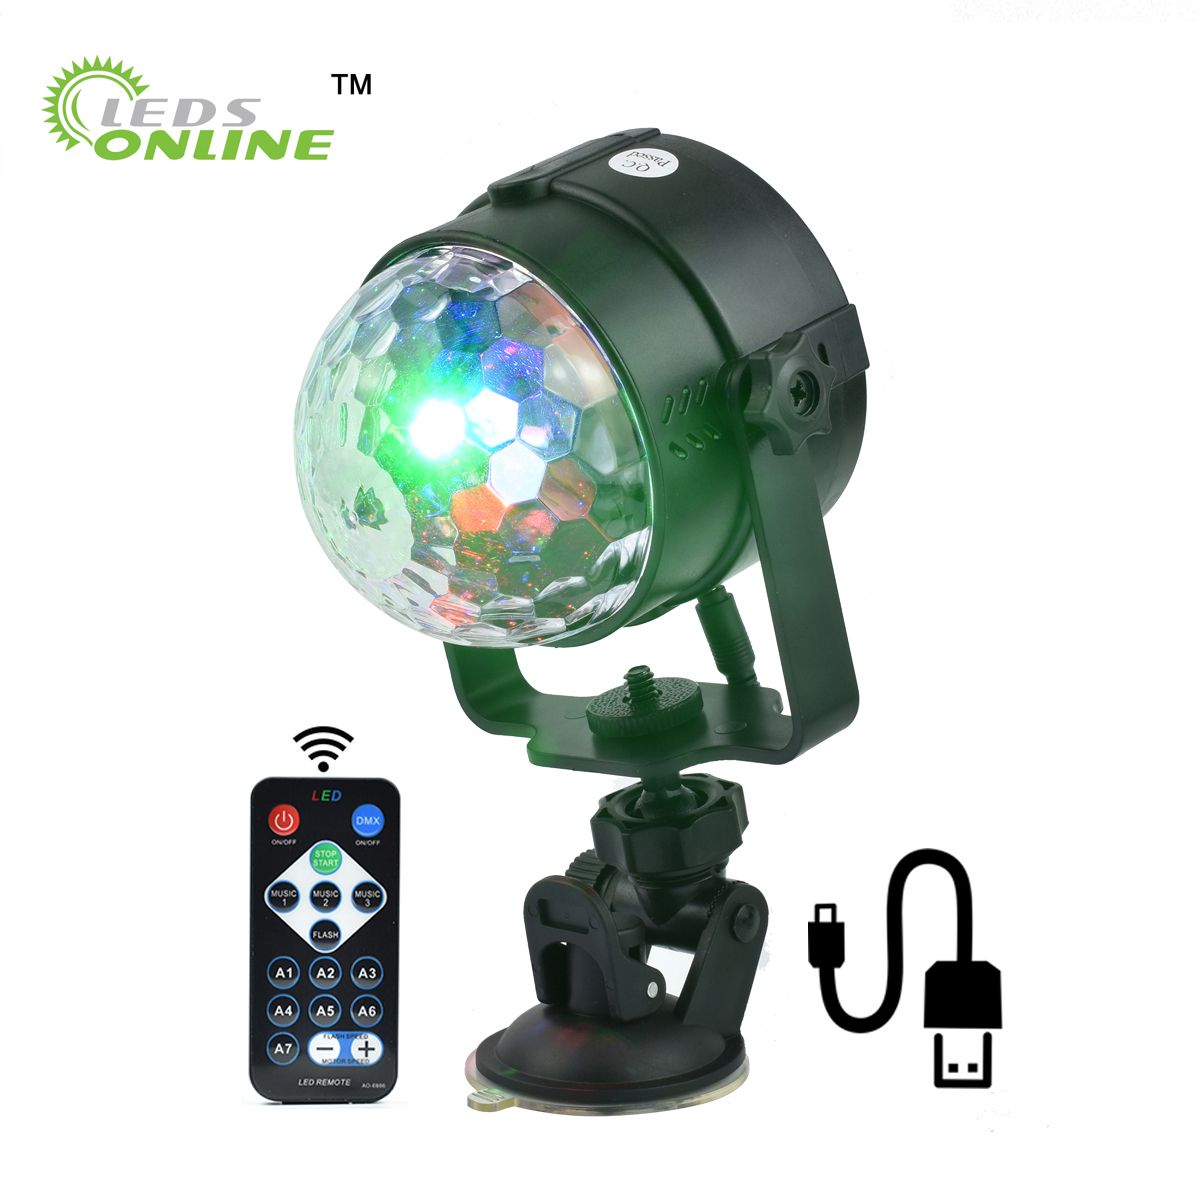 5V USB Stage Effect Light IR Remote RGB LED Crystal Magic Rotating Ball Lights Colorful for Party KTV DJ Disco Car Home Club [mingben] led bulb e27 rgb stage 16 colorful change lamp spotlight 110v 127v 220v home party wedding with ir remote